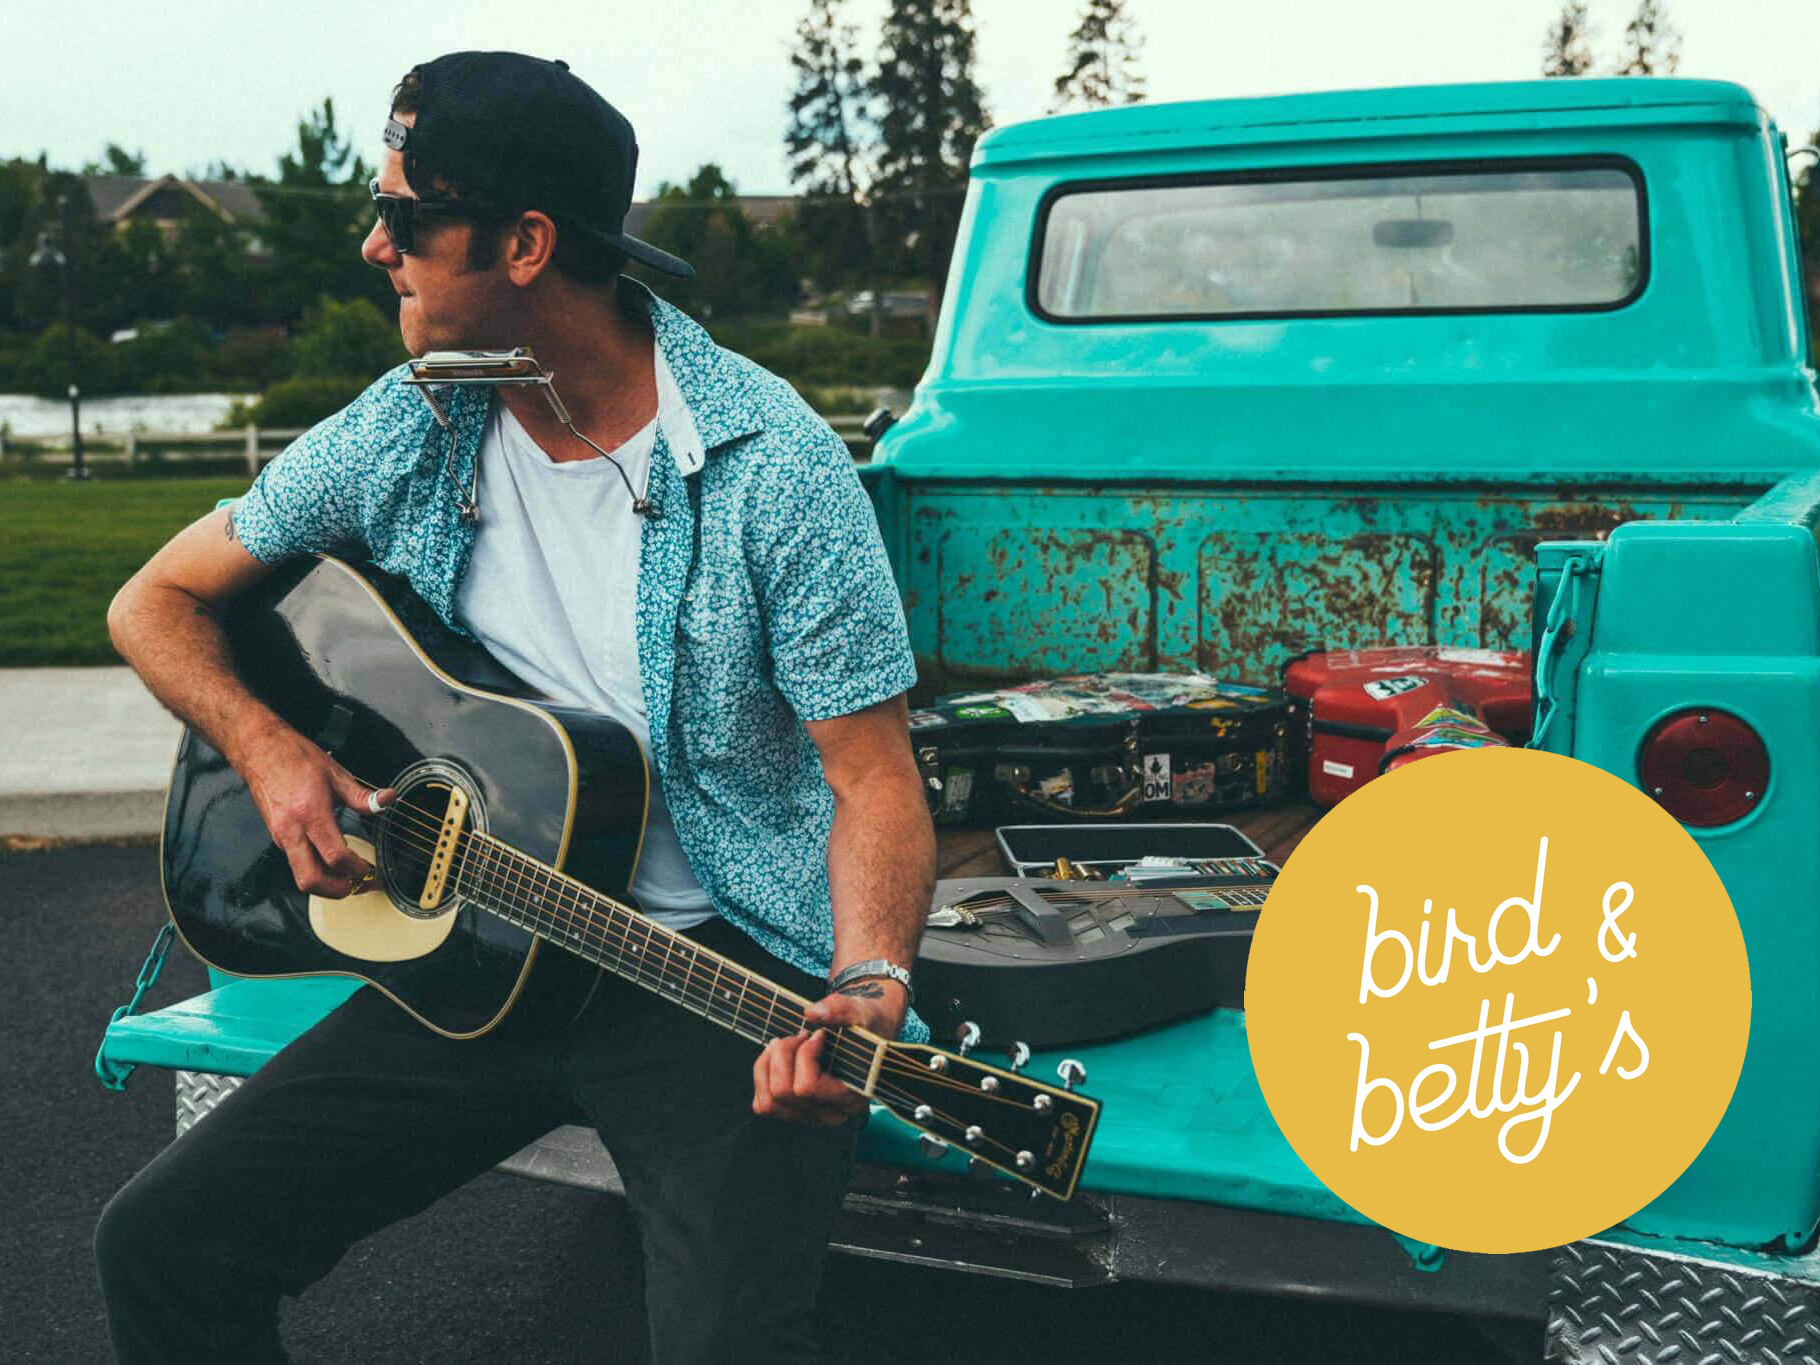 G Love Returns to LBI on June 28 and could not be more excited to have him at Bird & Betty's to kick off the summer. Photo: The Good Life.